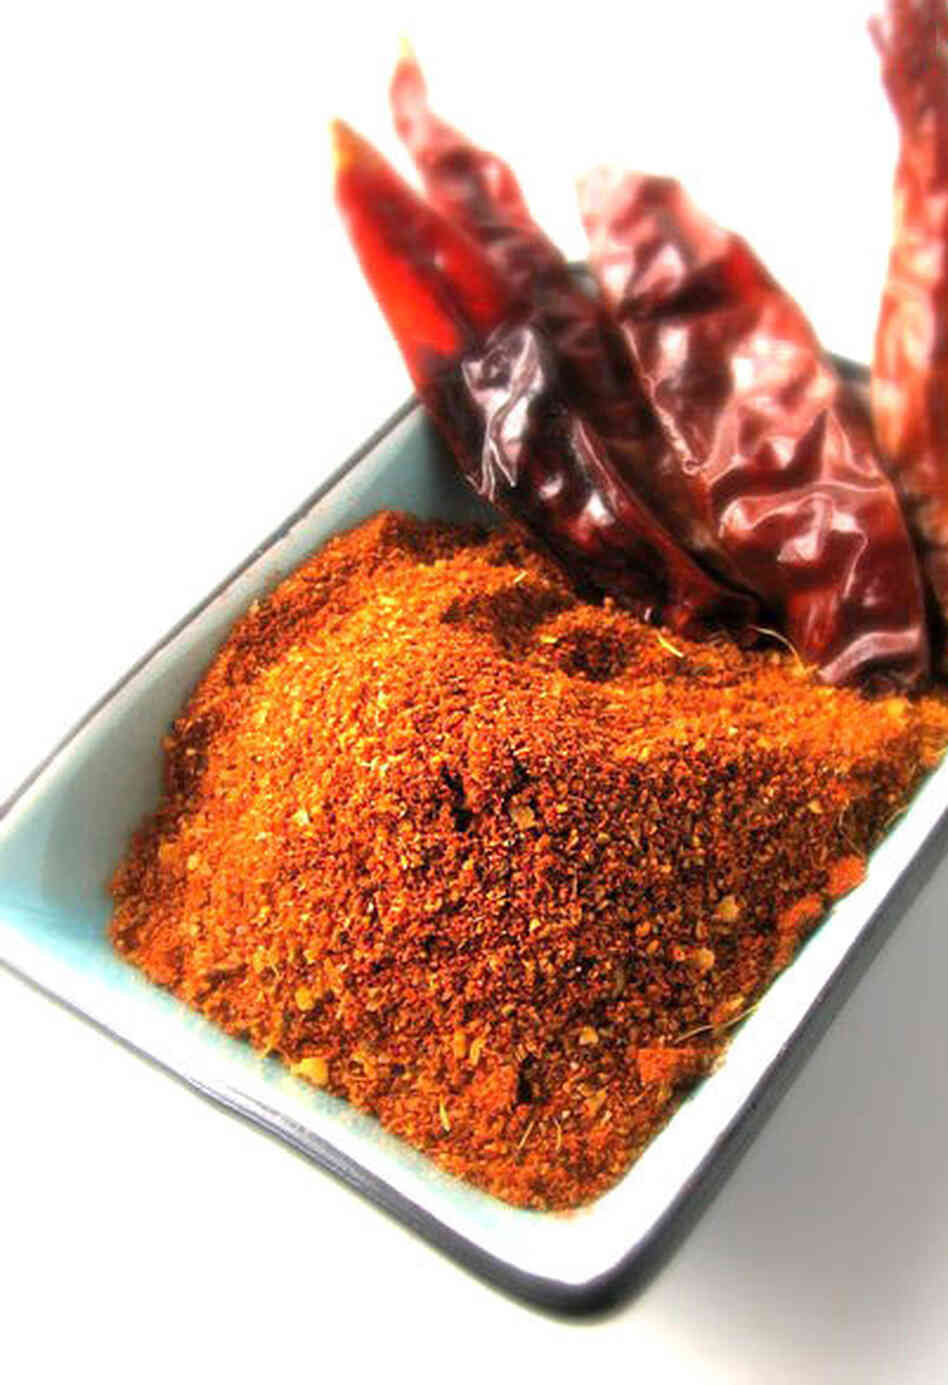 Berbere, a spice mix common in Ethiopian cuisine